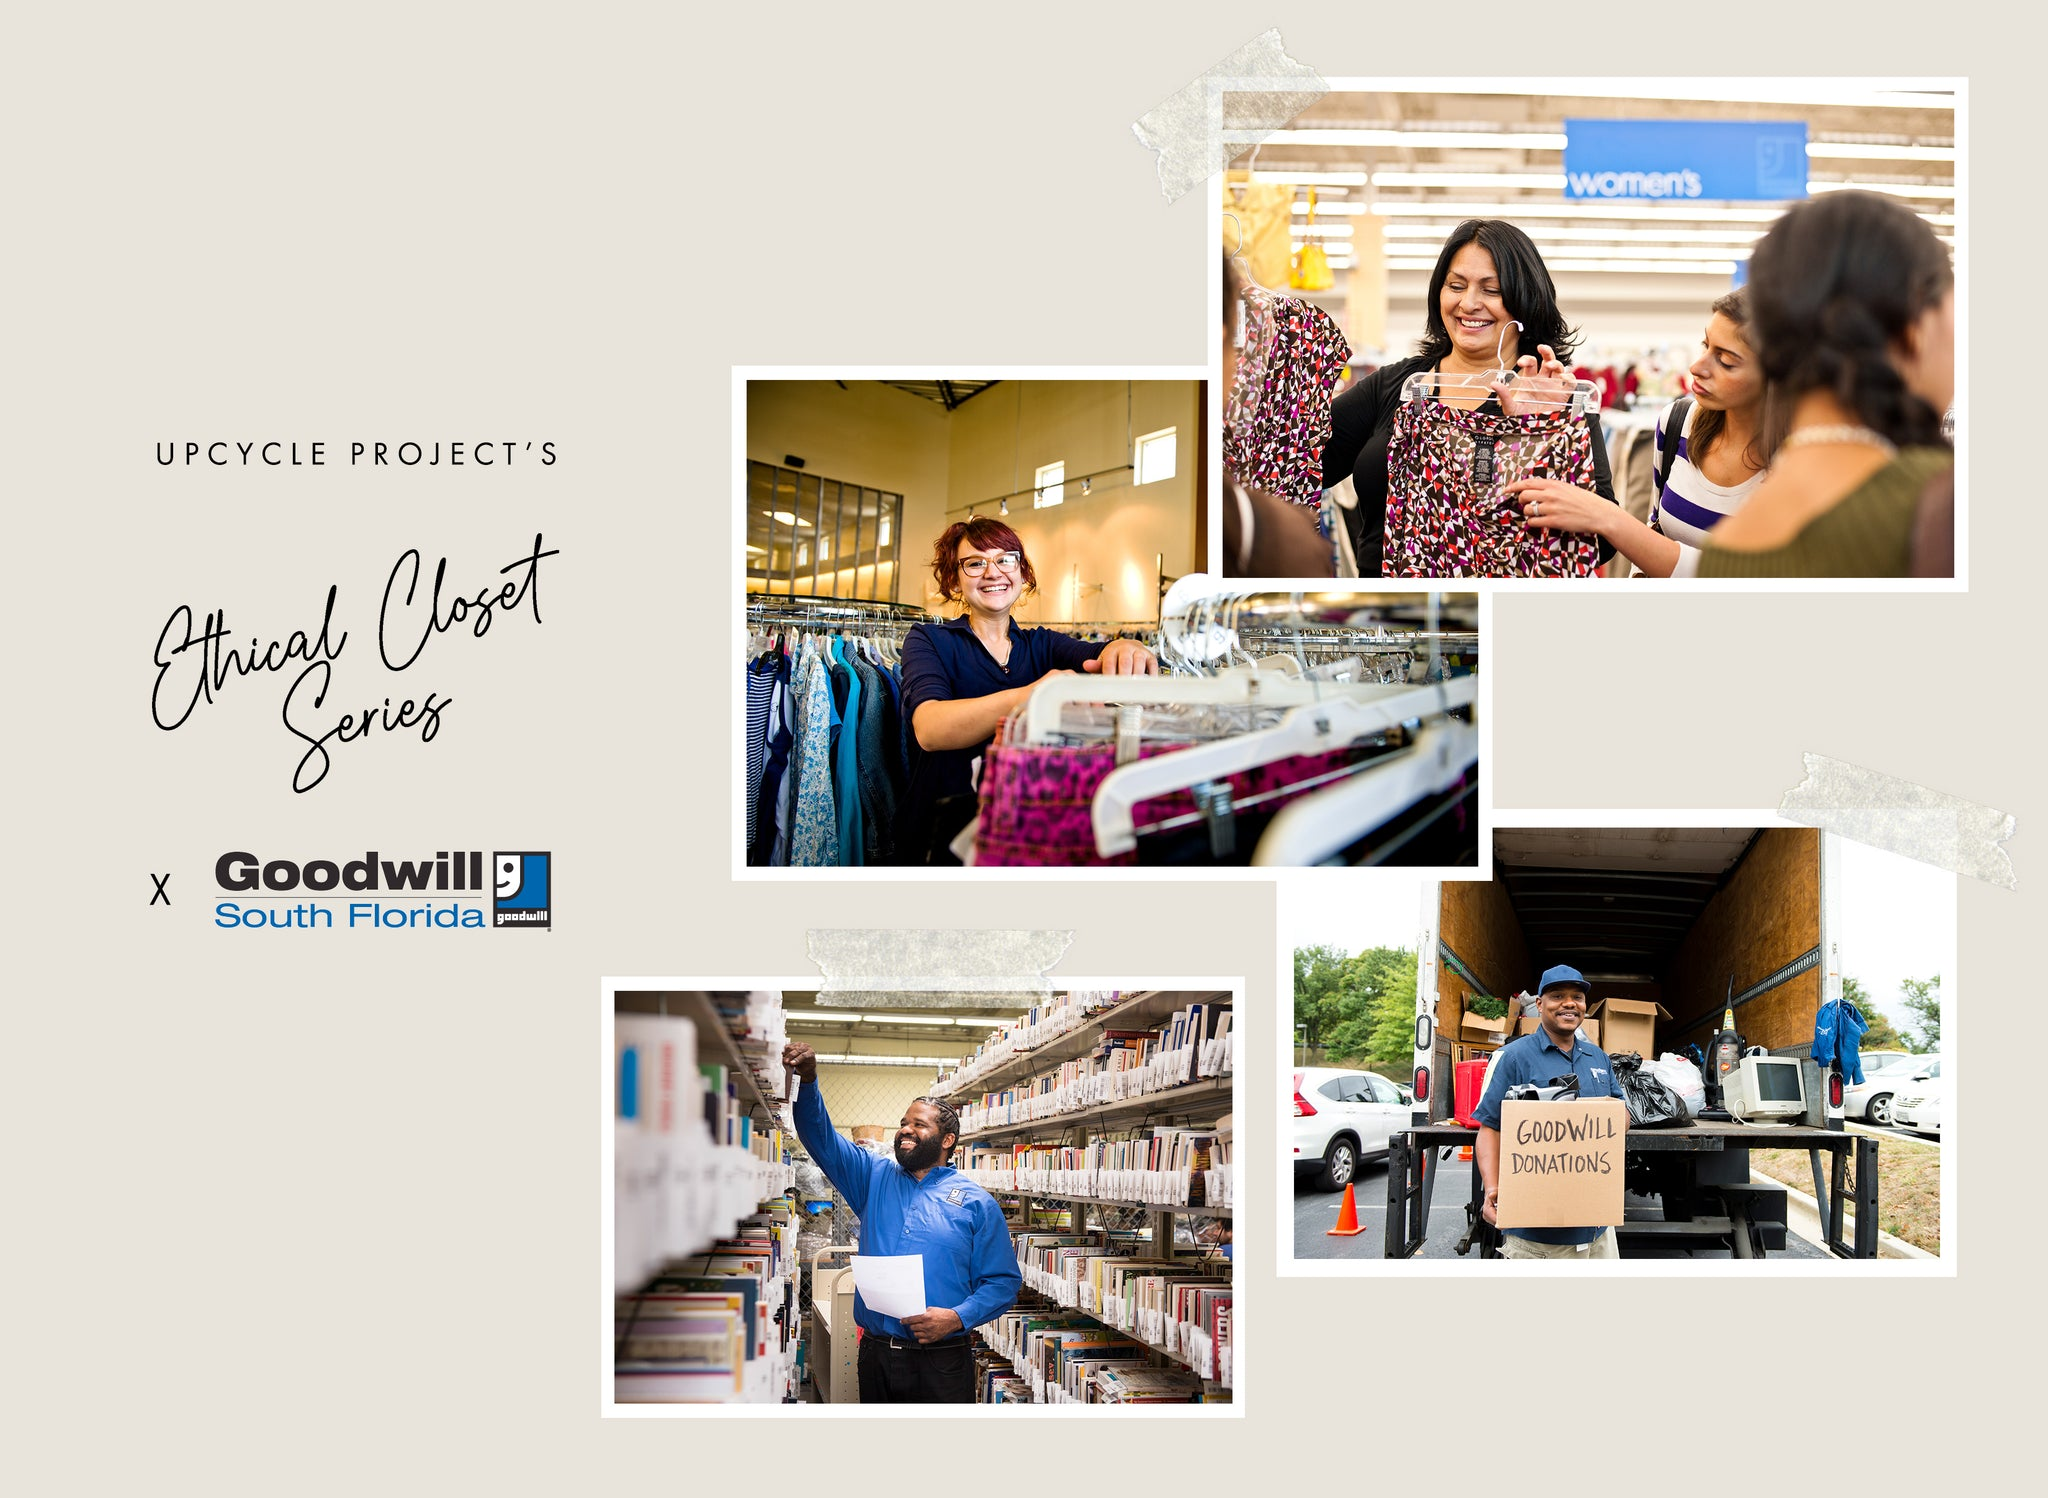 Ethical Closet Series Upcycle Project Goodwill Sustainable Fashion